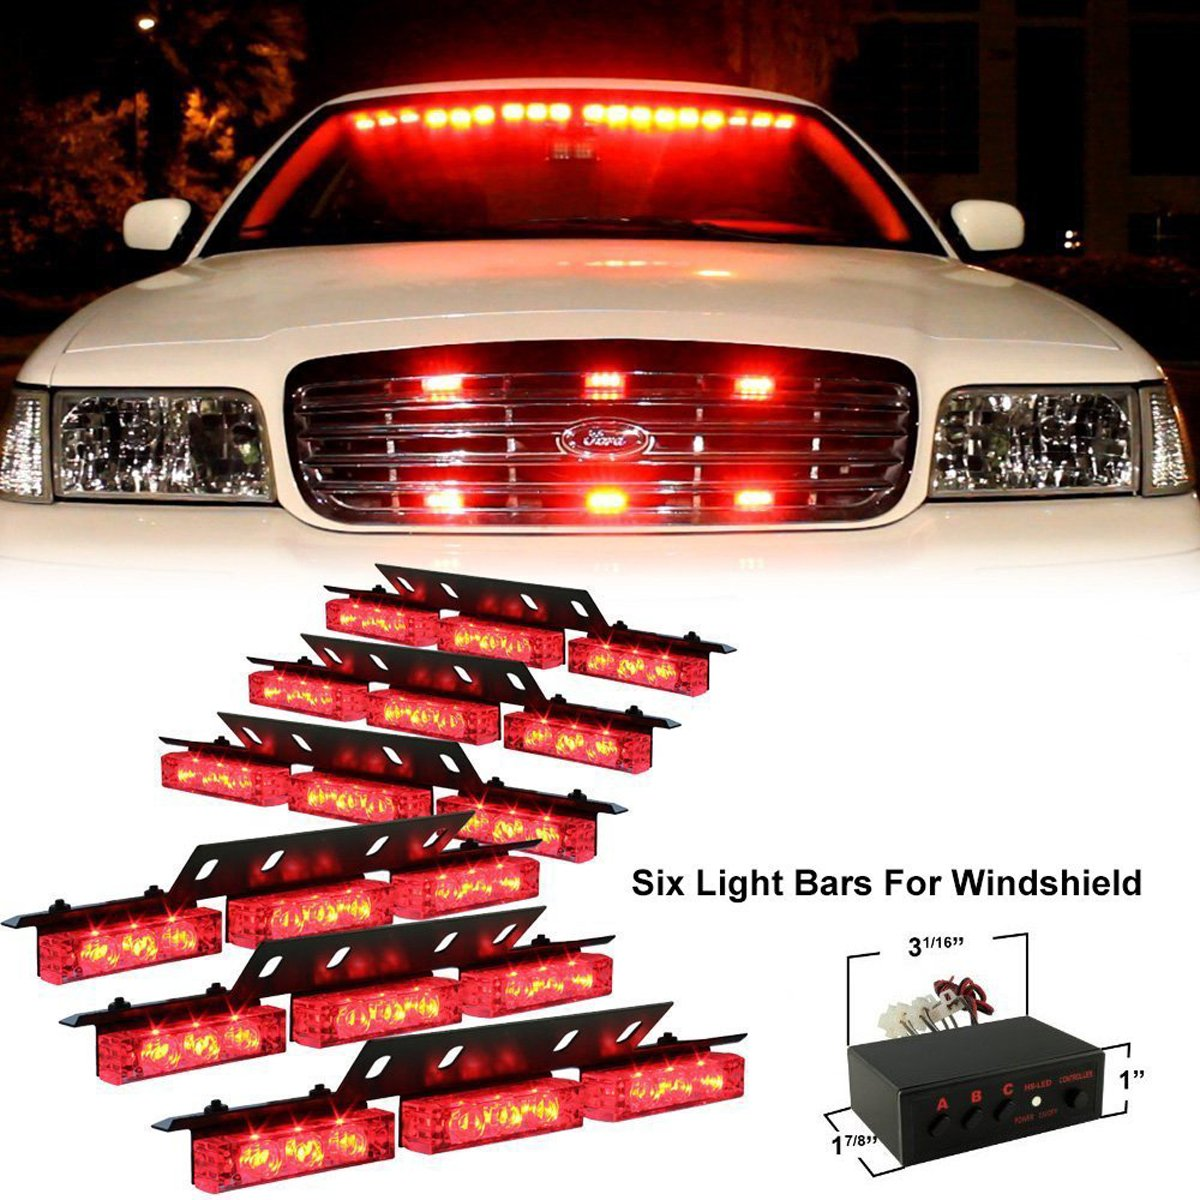 PACASK 54 LED Warning Use Flashing Strobe Lights Emergency Vehicle Strobe Lights Bar for Windshield Dash Grille (yellow)